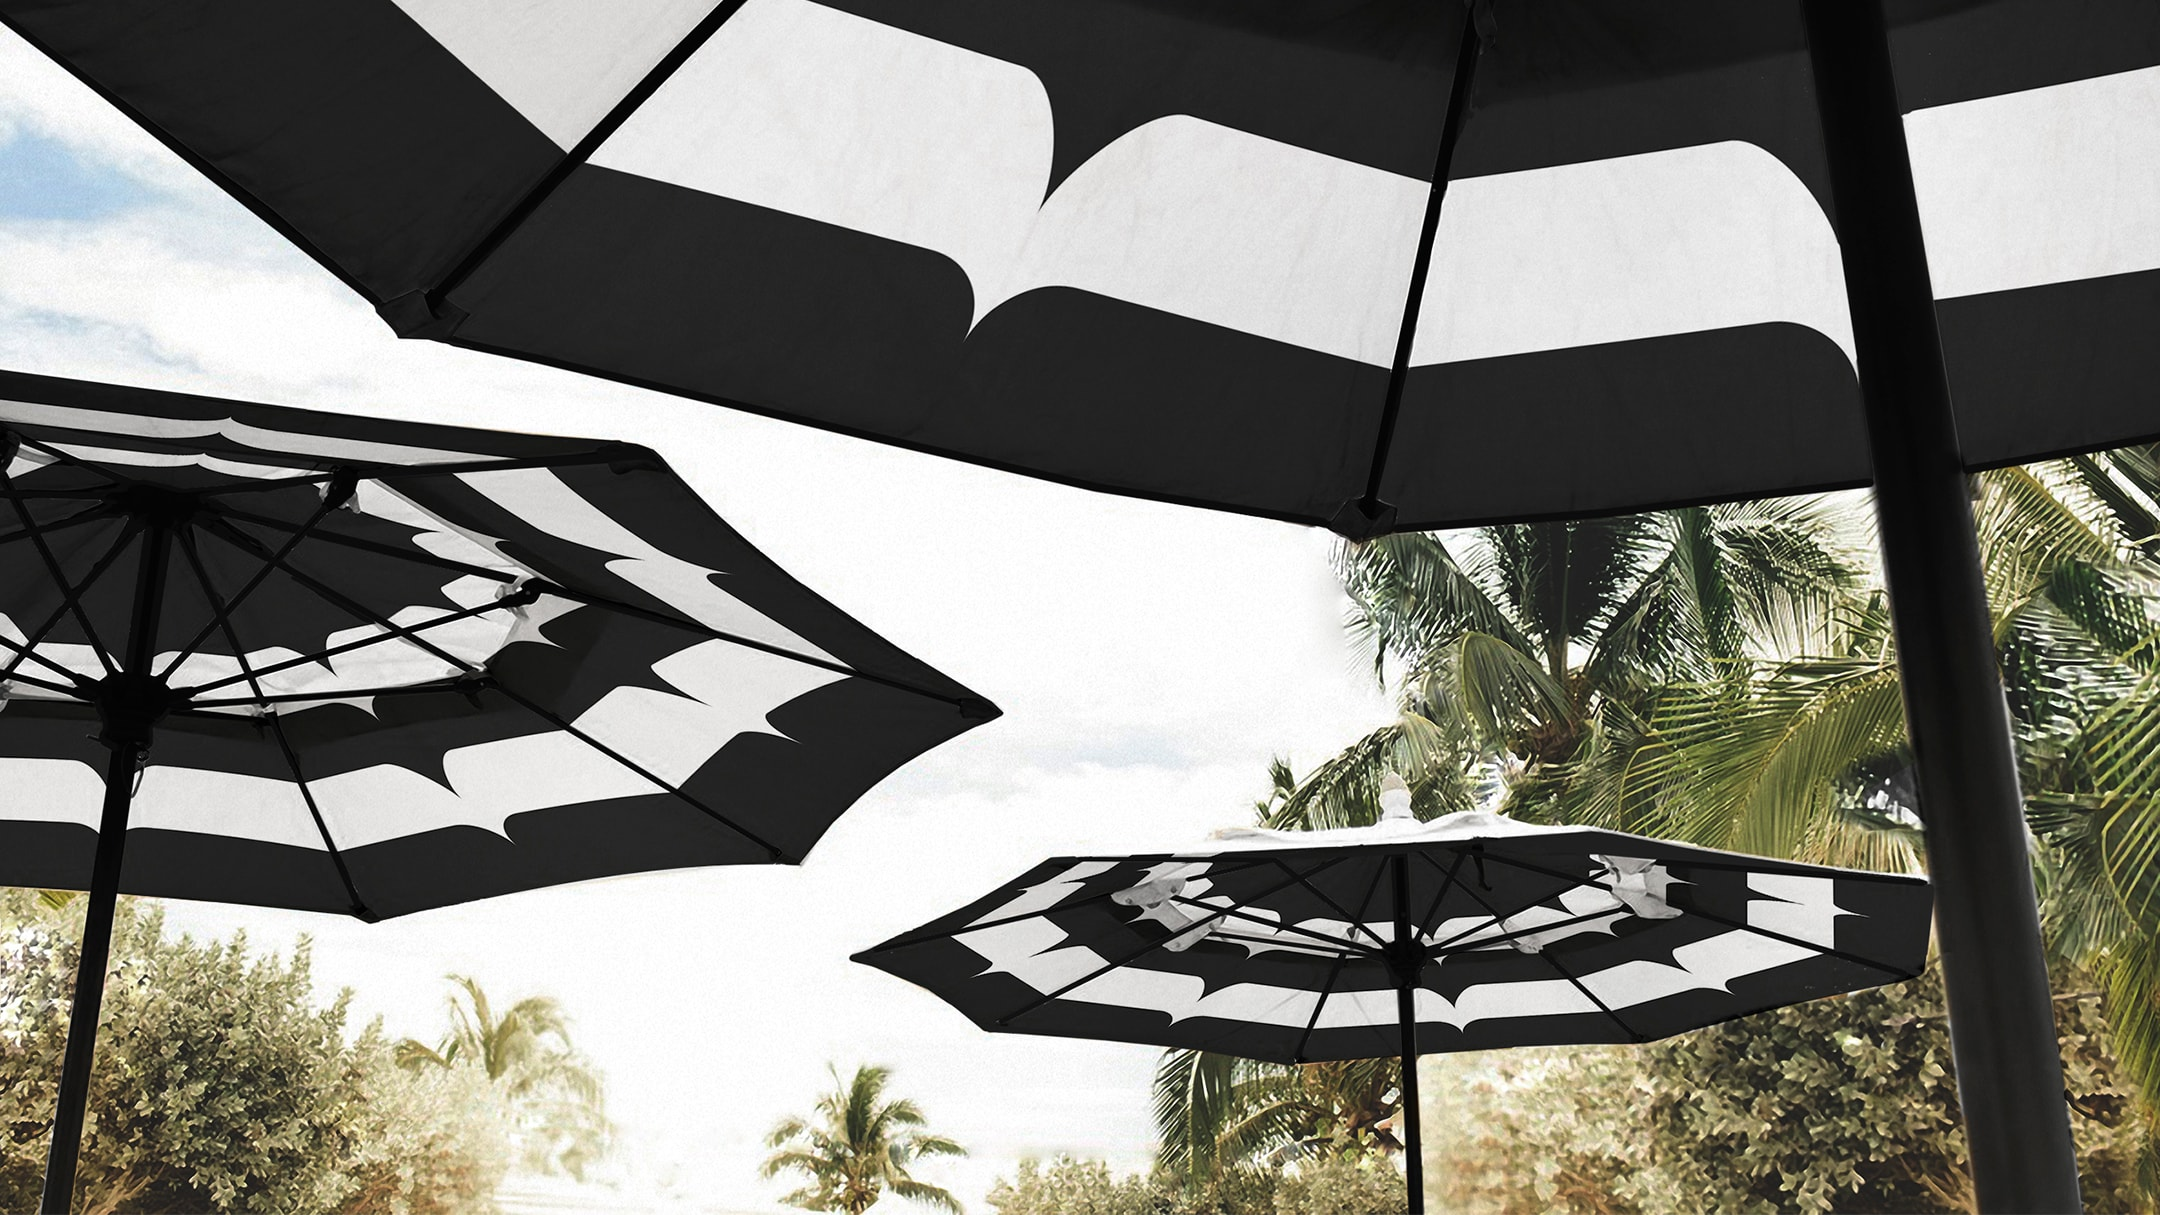 Black and white hotel pool umbrellas that feature a pattern from the Current's hotel branding.